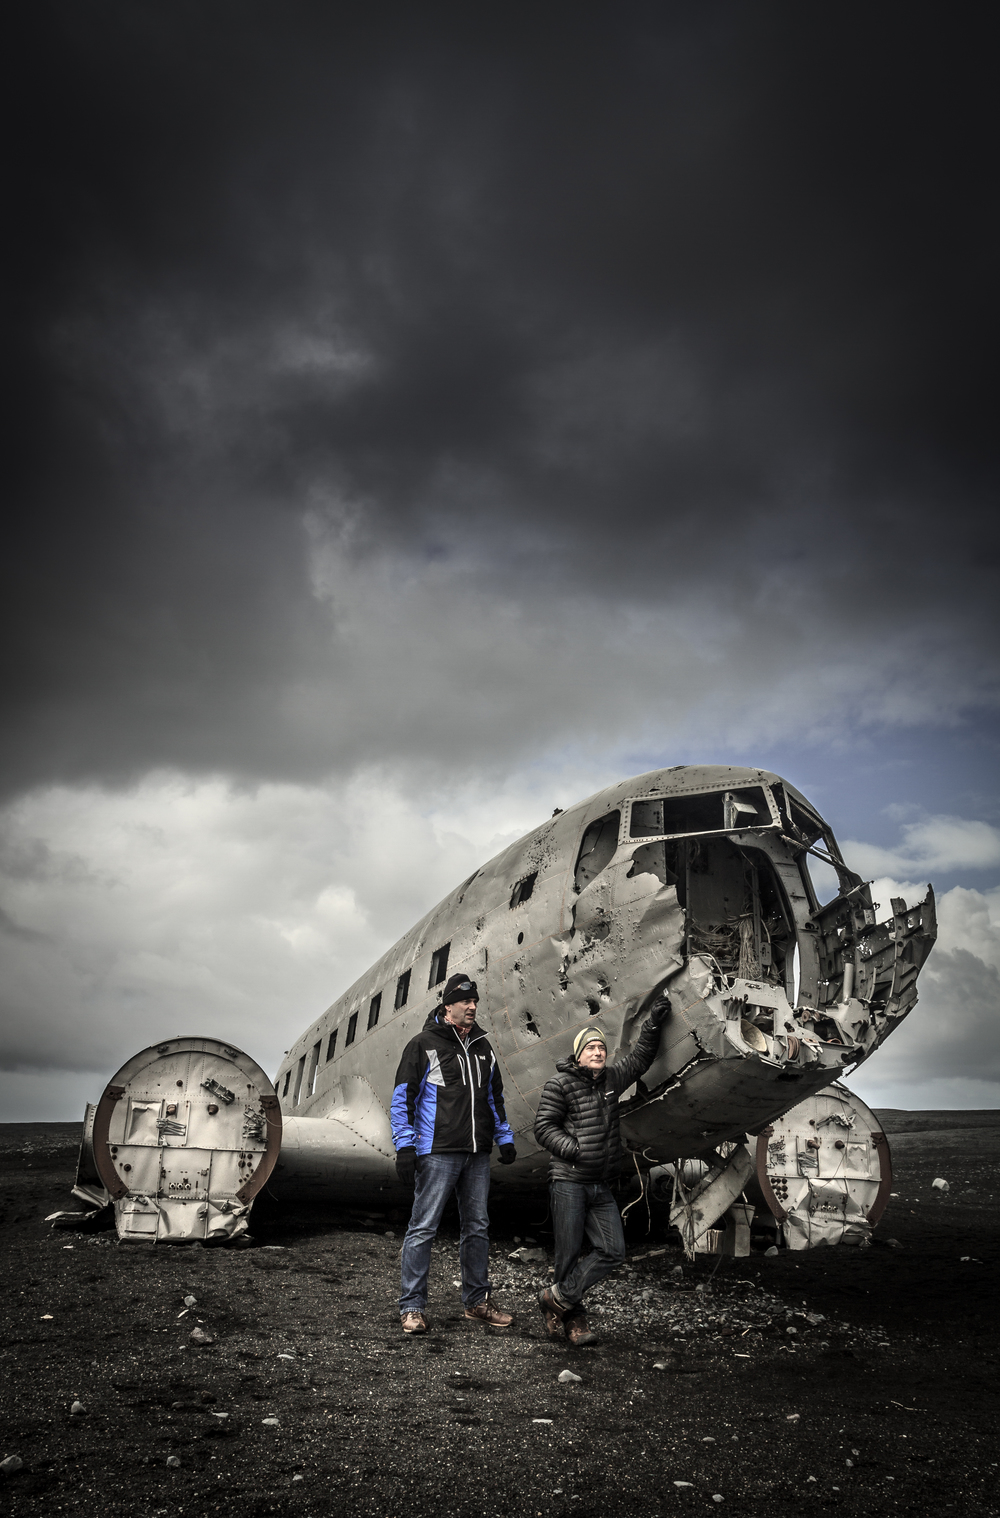 What's left of the DC-3 after 40 years of Icelandic weathering..